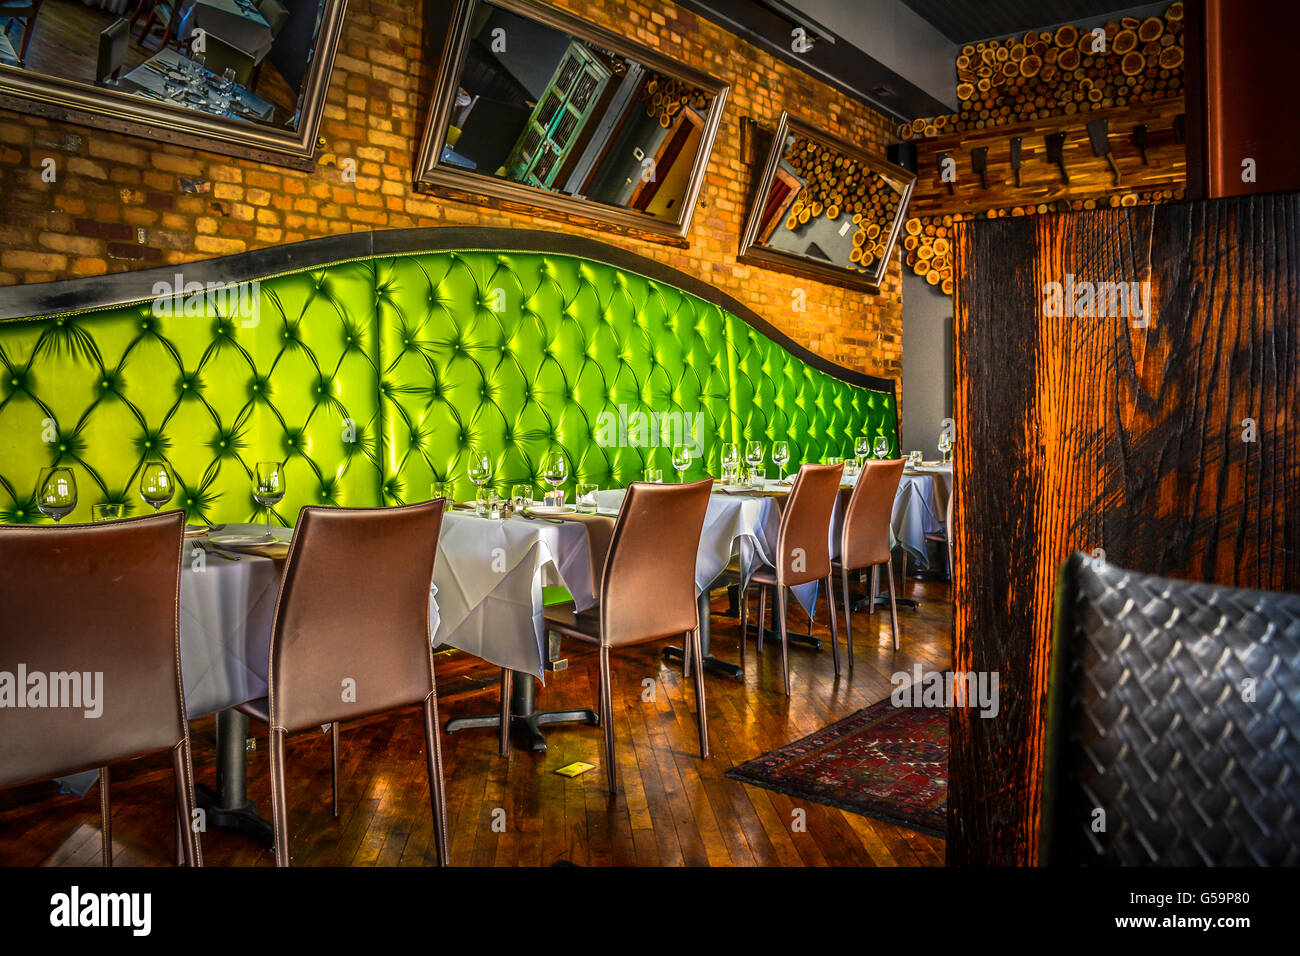 the posh lime green upholstered booths with brick-lined walls in